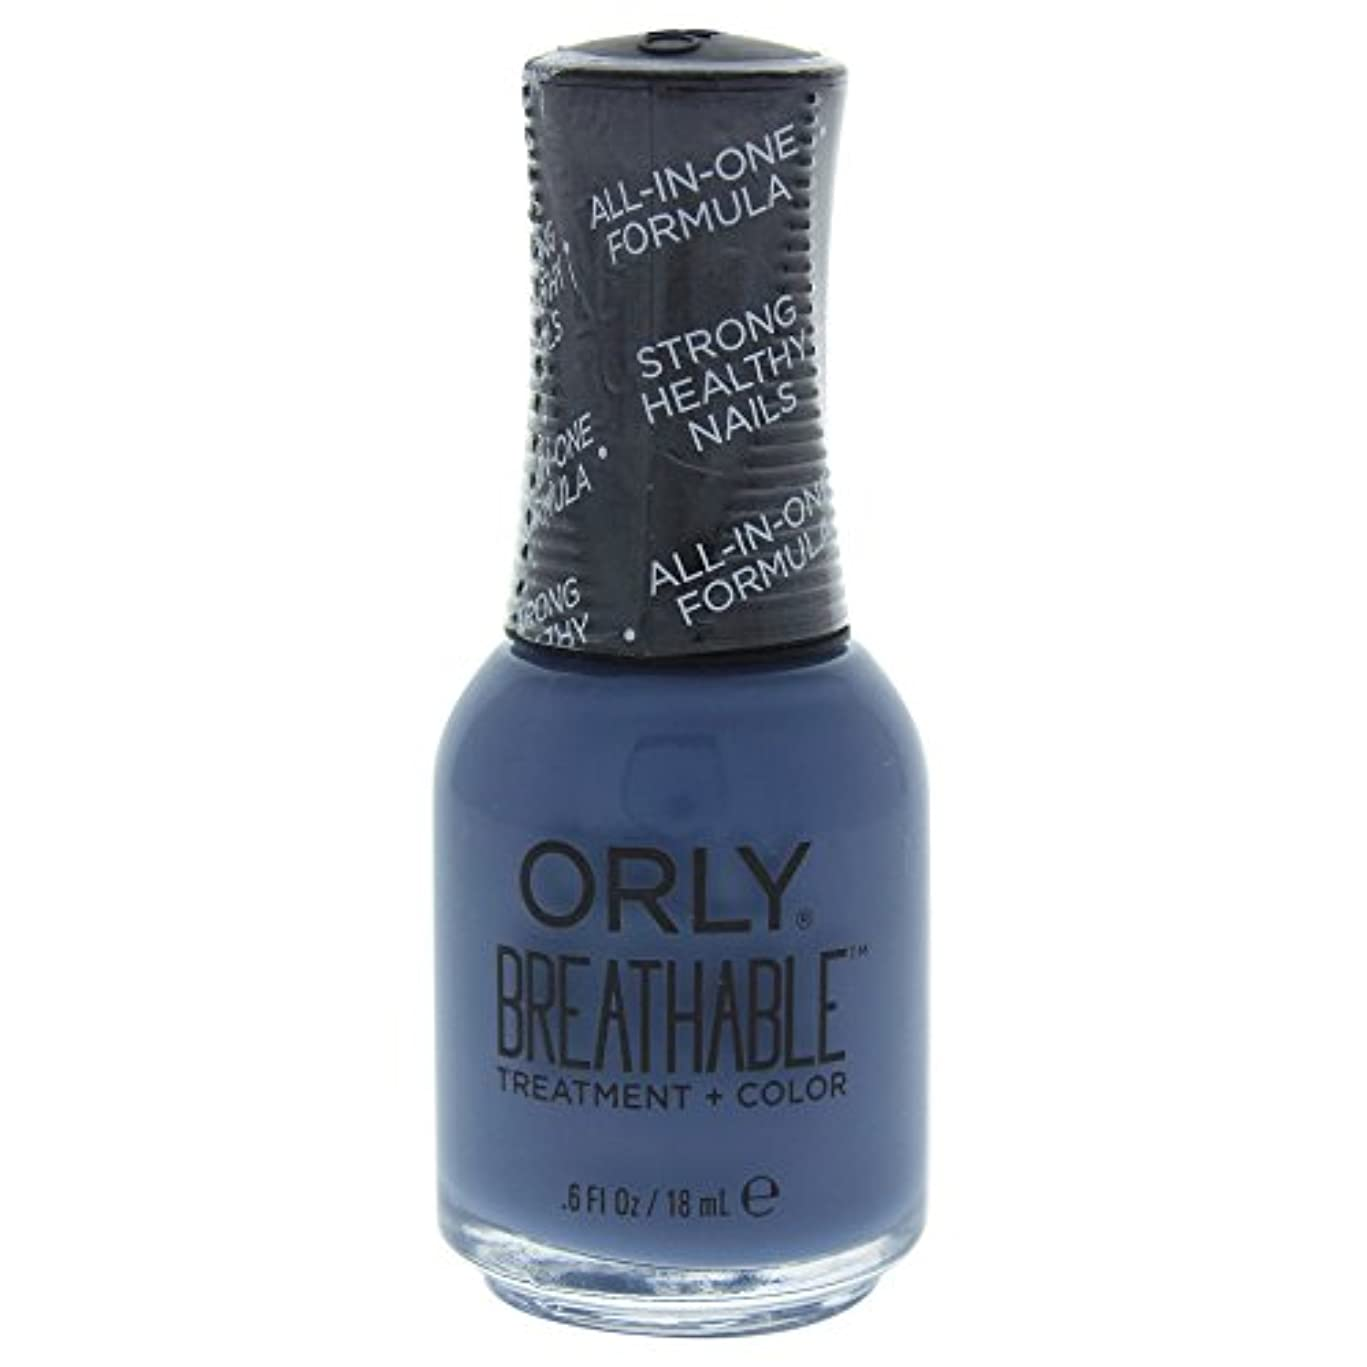 Orly Breathable Treatment + Color Nail Lacquer - De-Stressed Denim - 0.6oz / 18ml